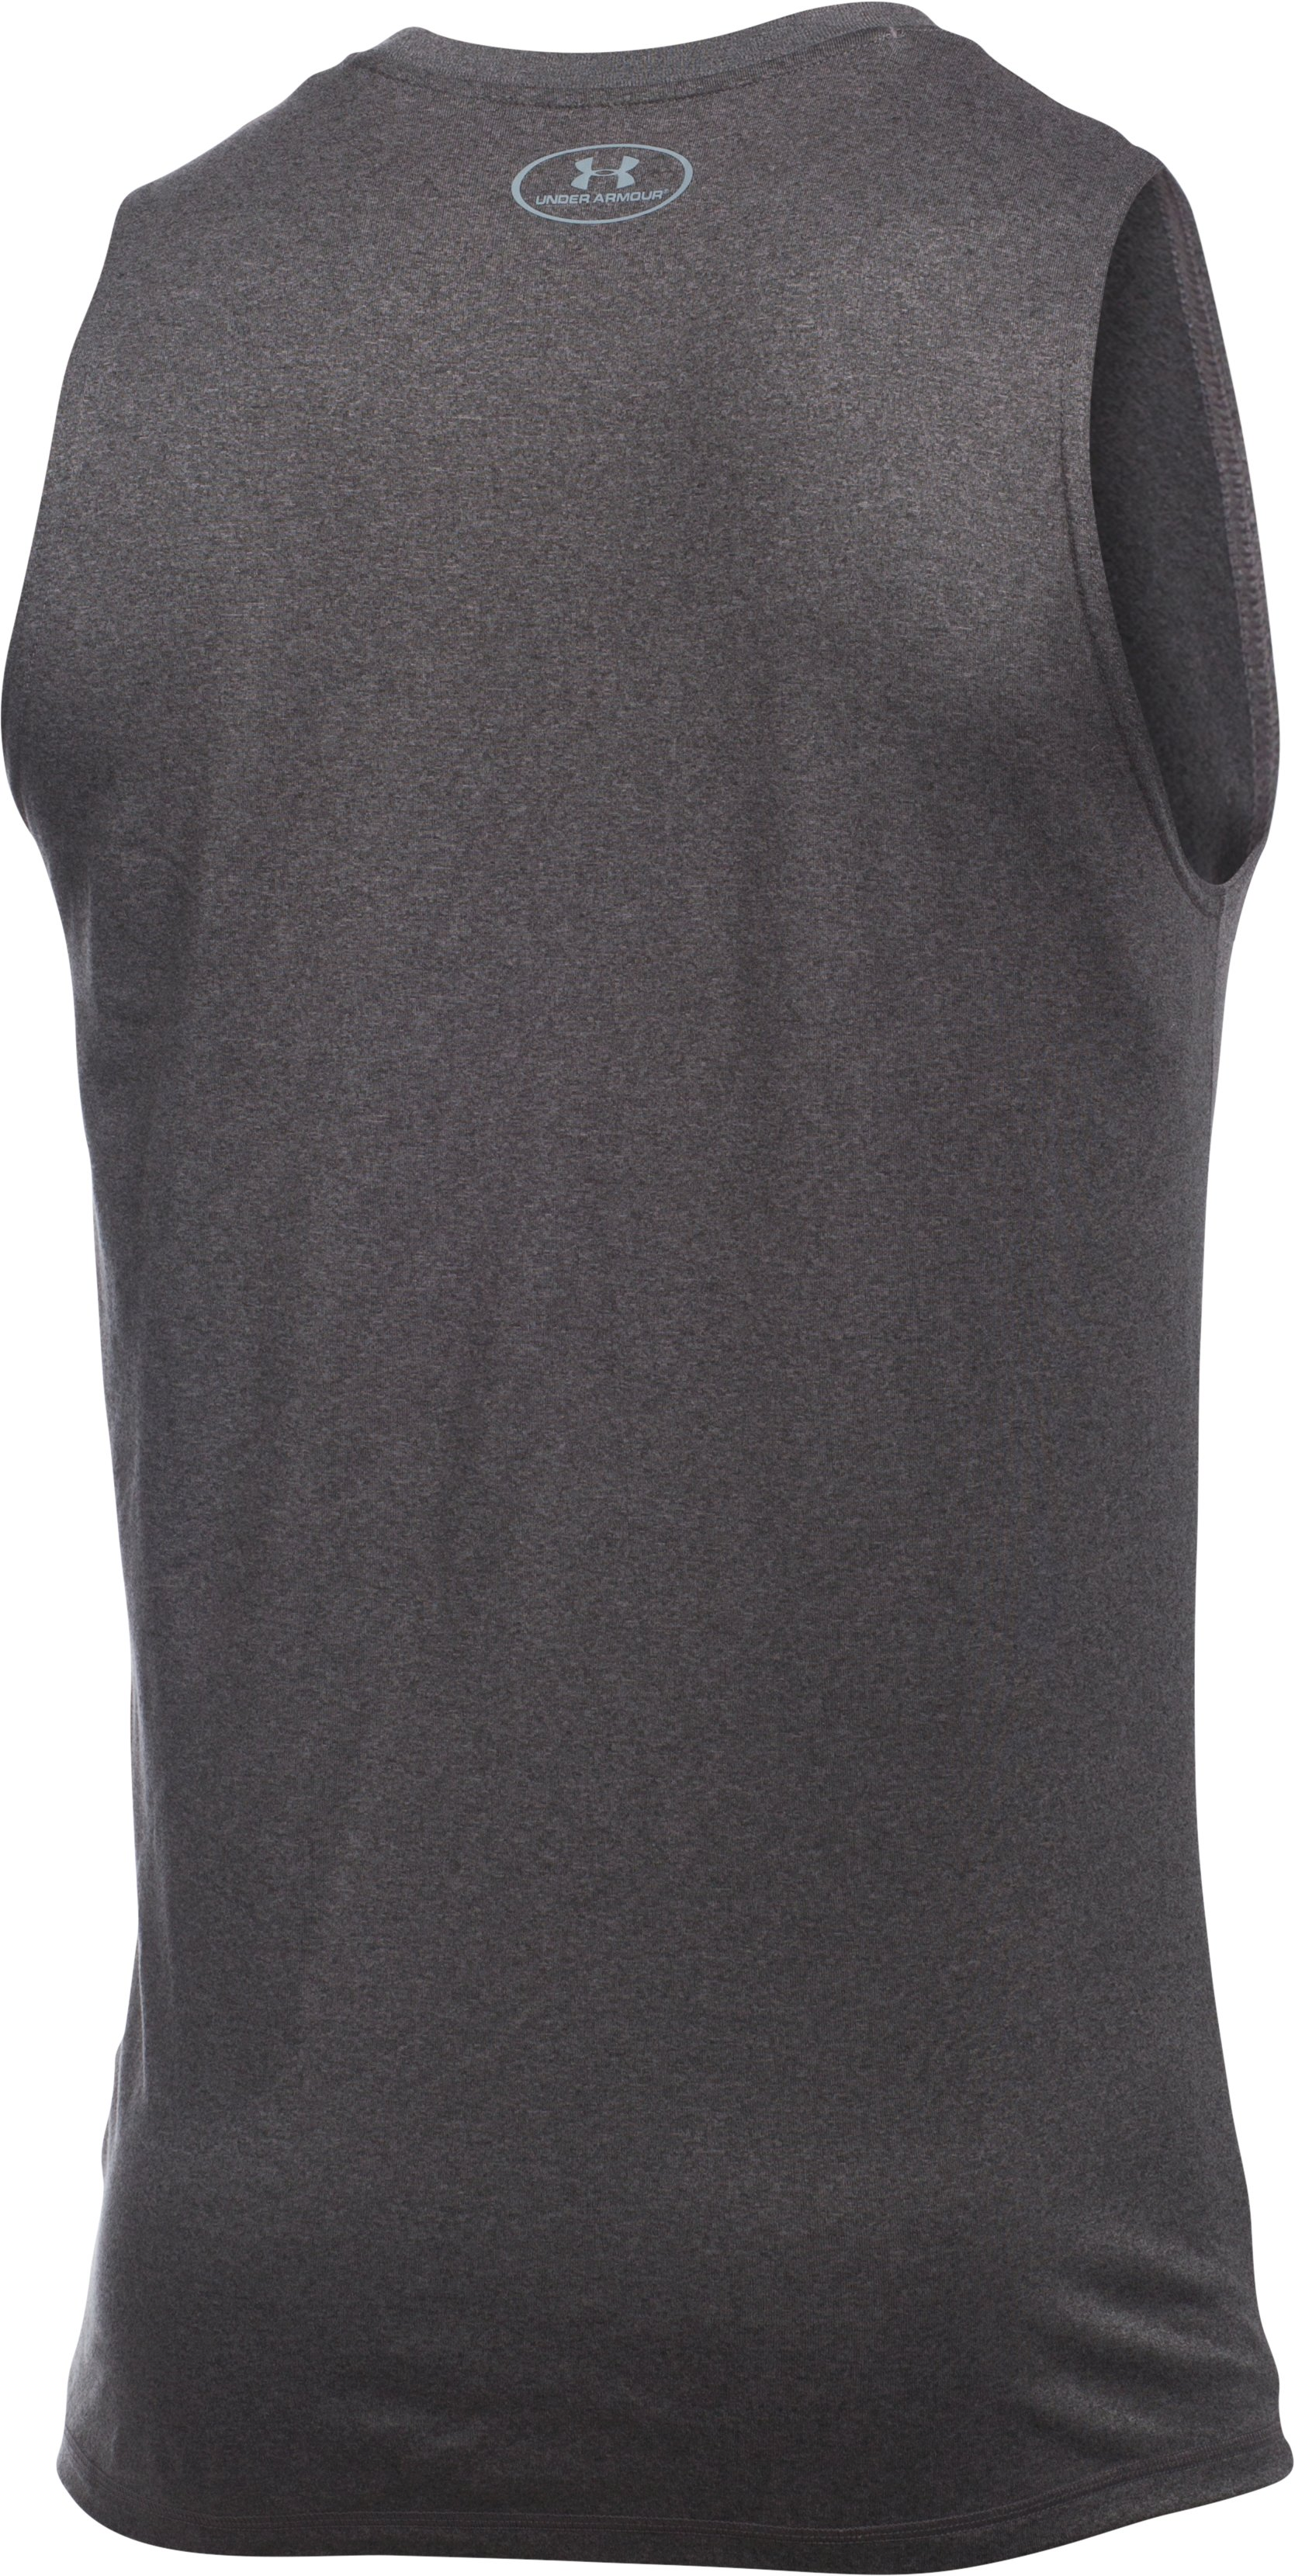 Men's New York Yankees Tech™ Tank, Carbon Heather